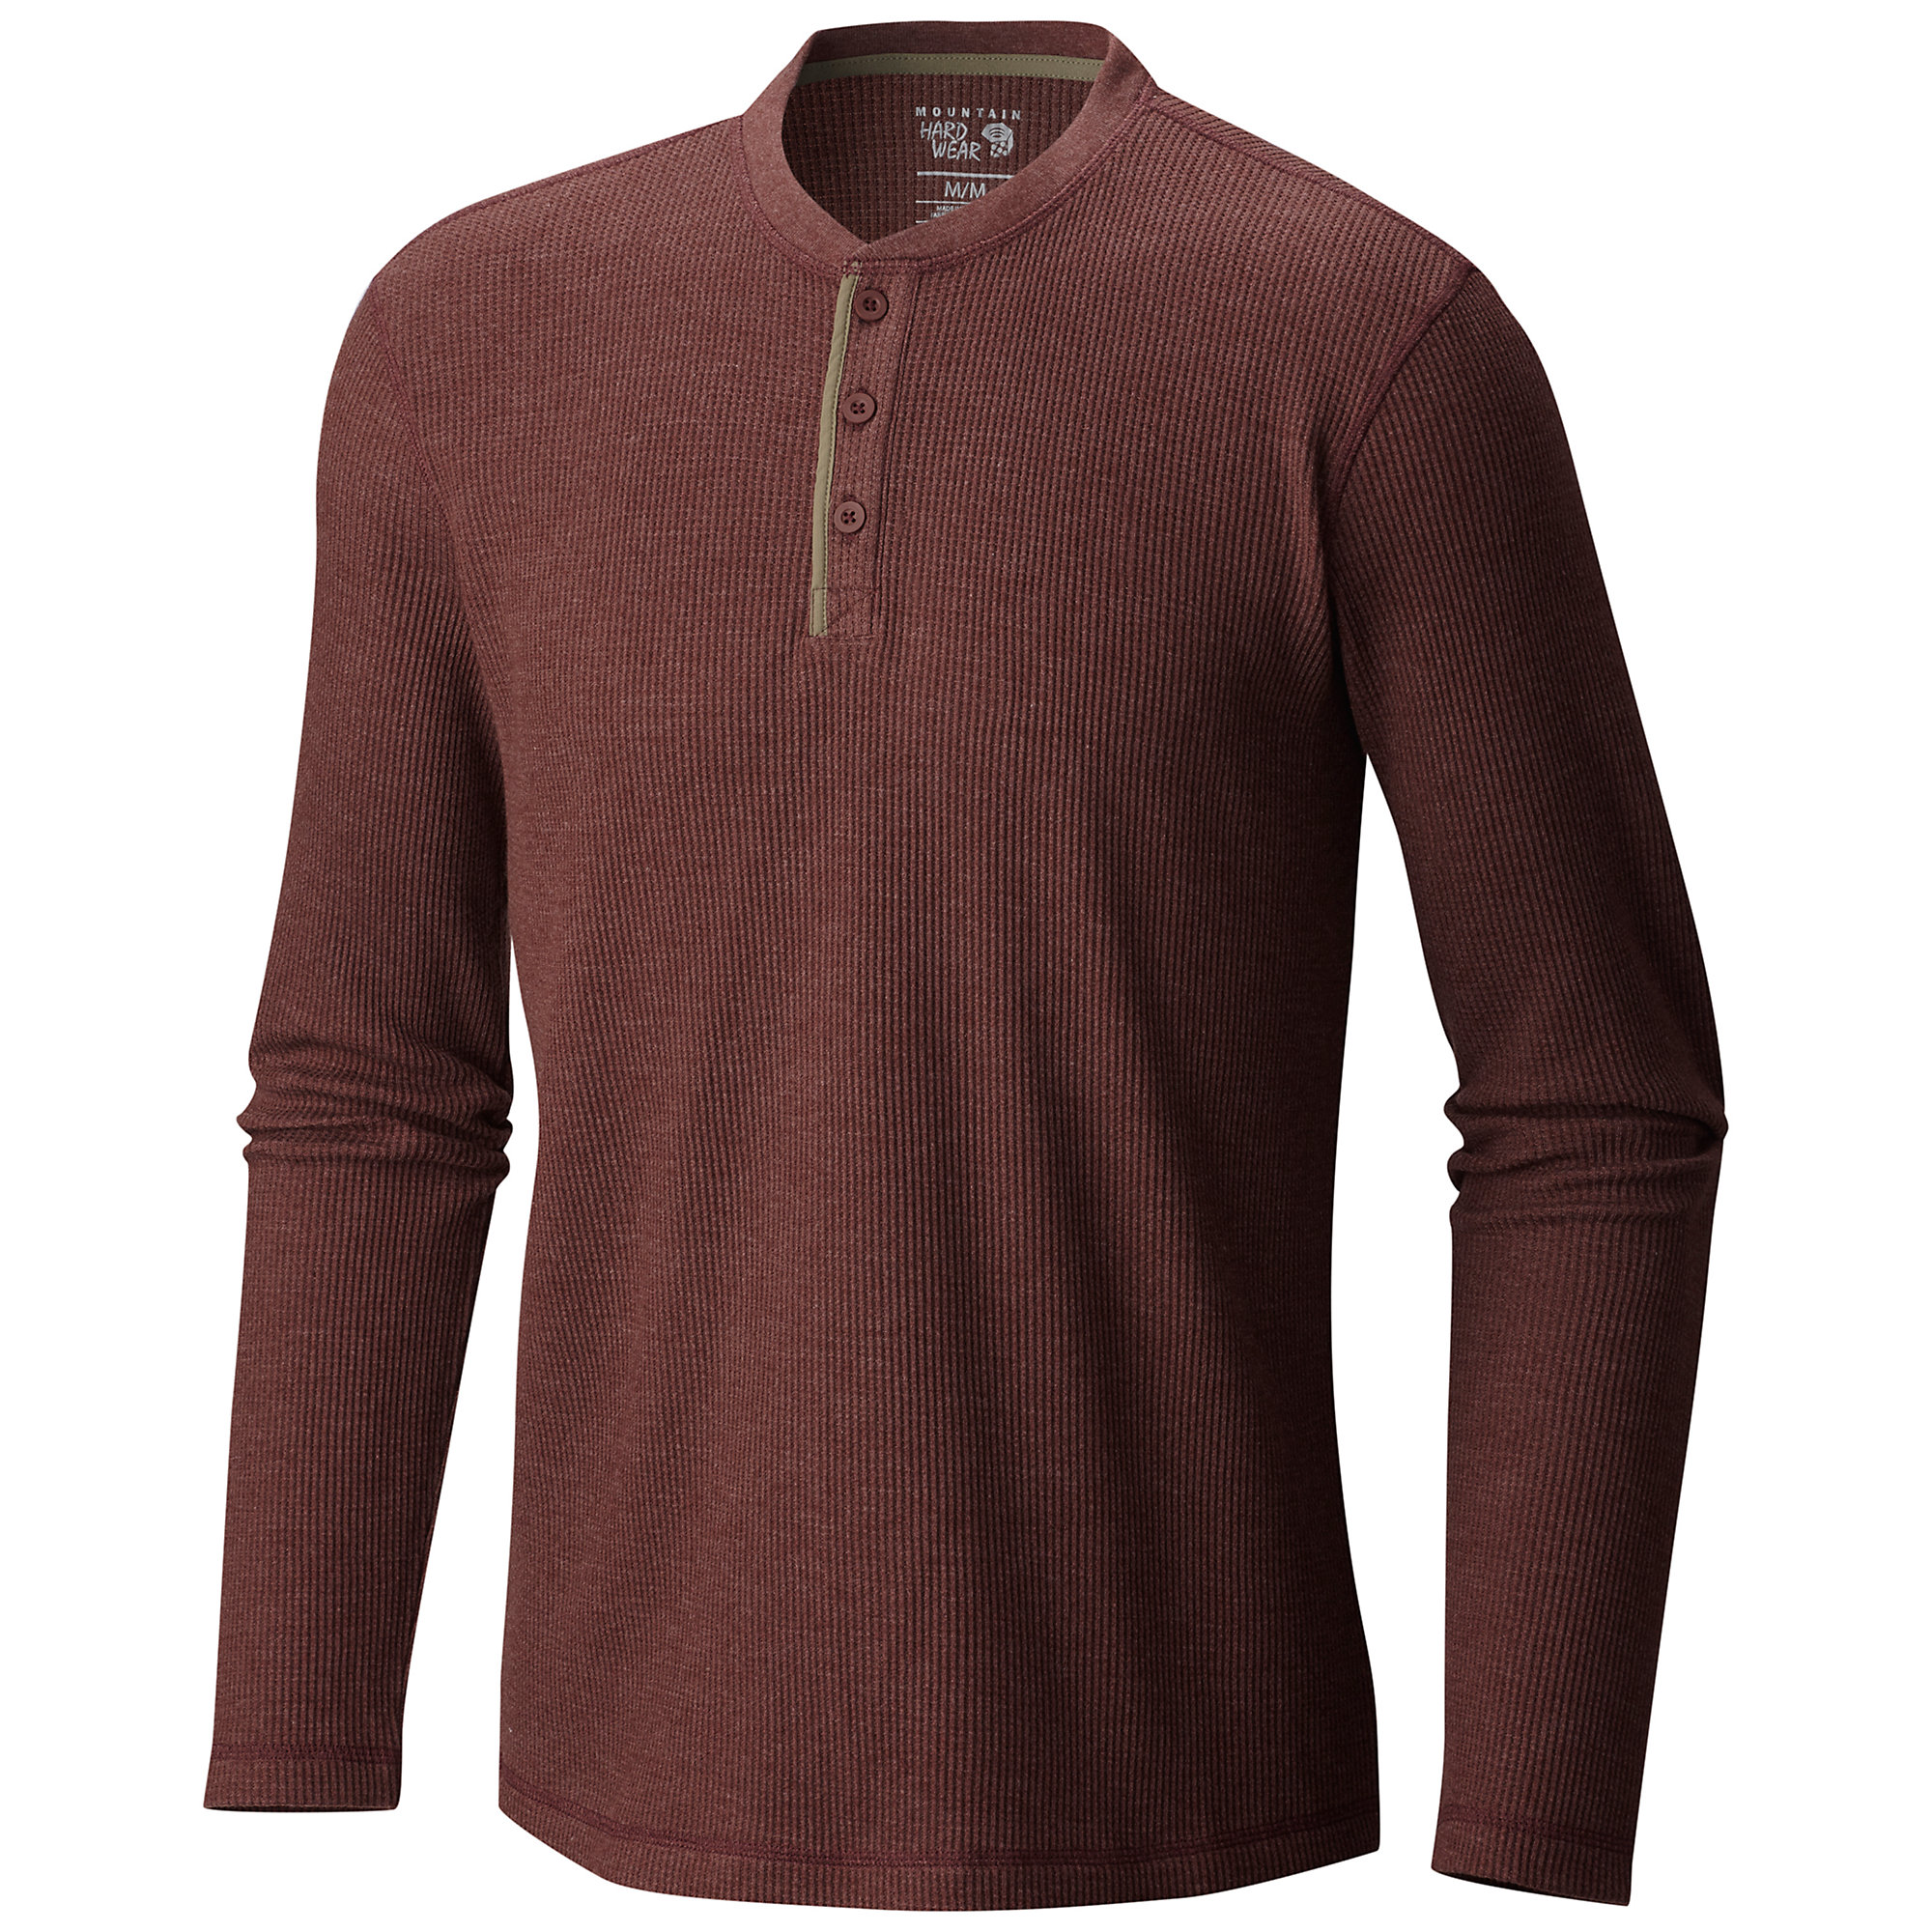 Mountain Hardwear Fallon Thermal Henley